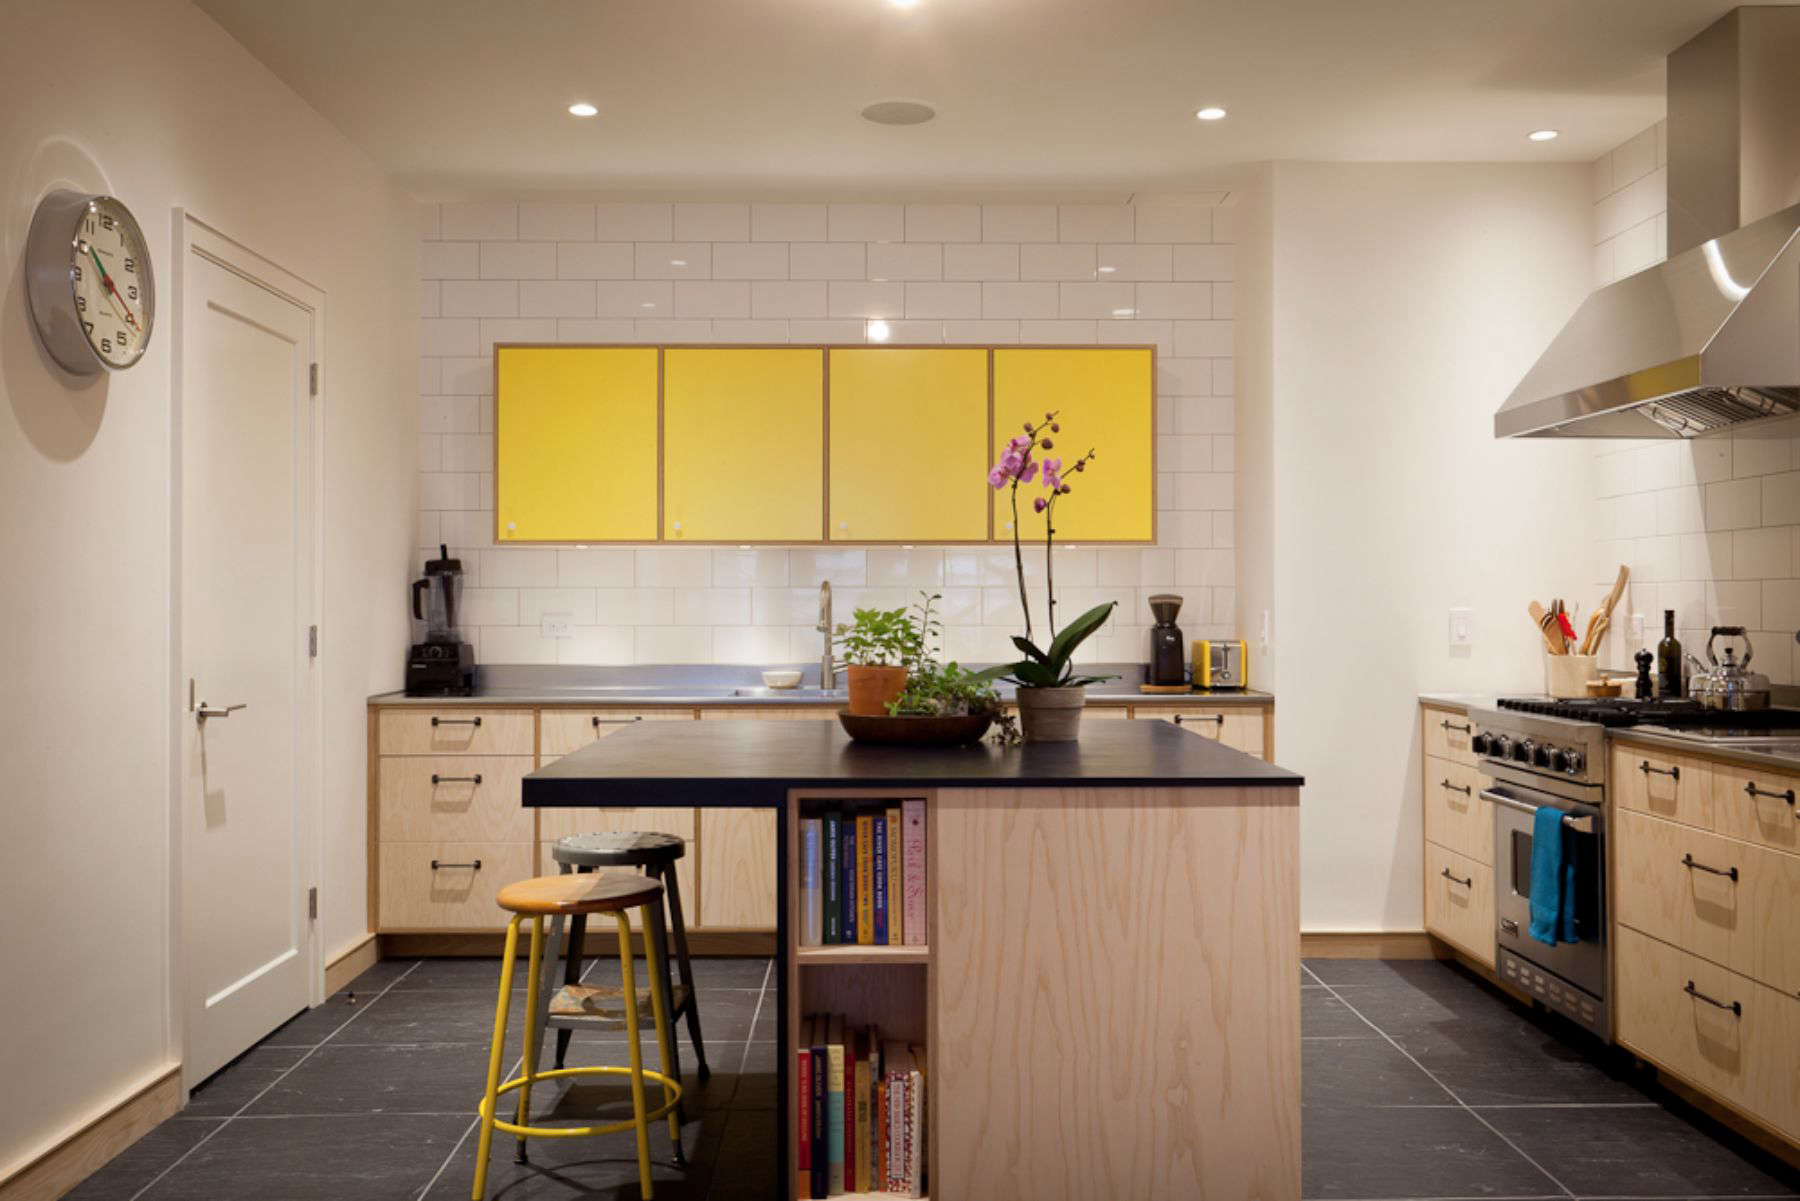 browse kitchens archives on remodelista best professional kitchen a sunny chelsea kitchen by robertson tait and architecture durusoy